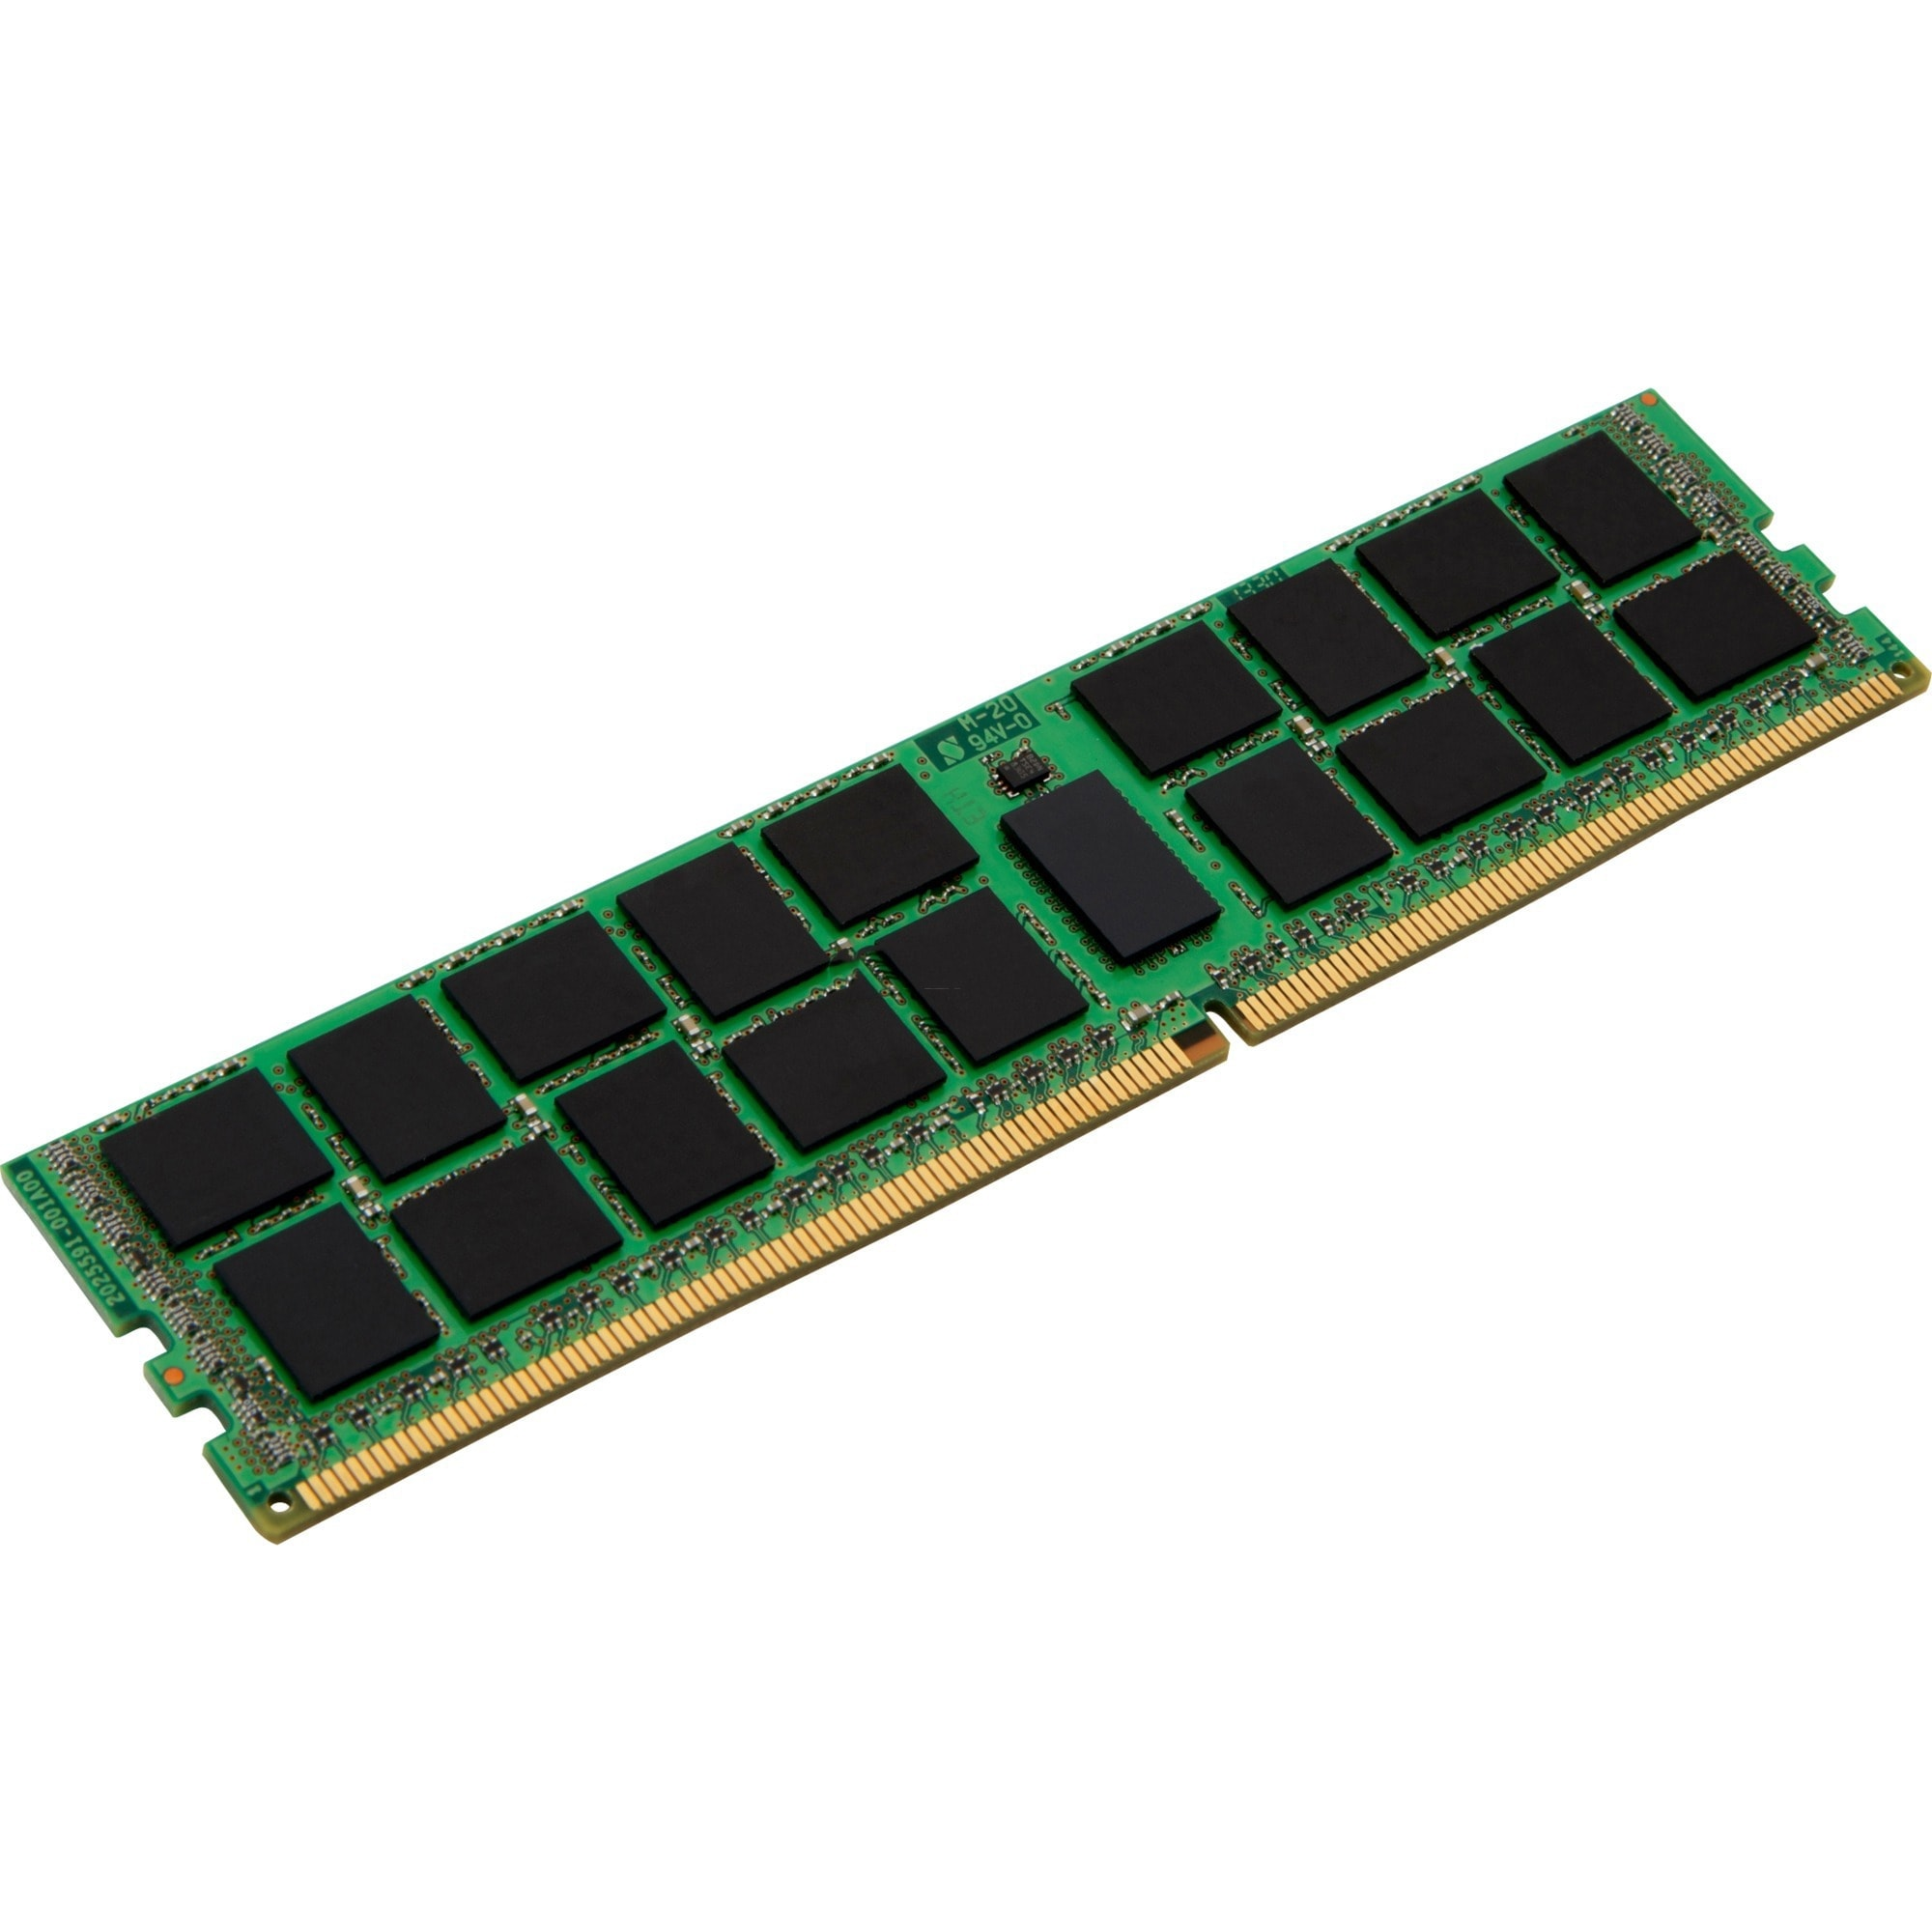 Barrette de ram PC Kingston    - 0